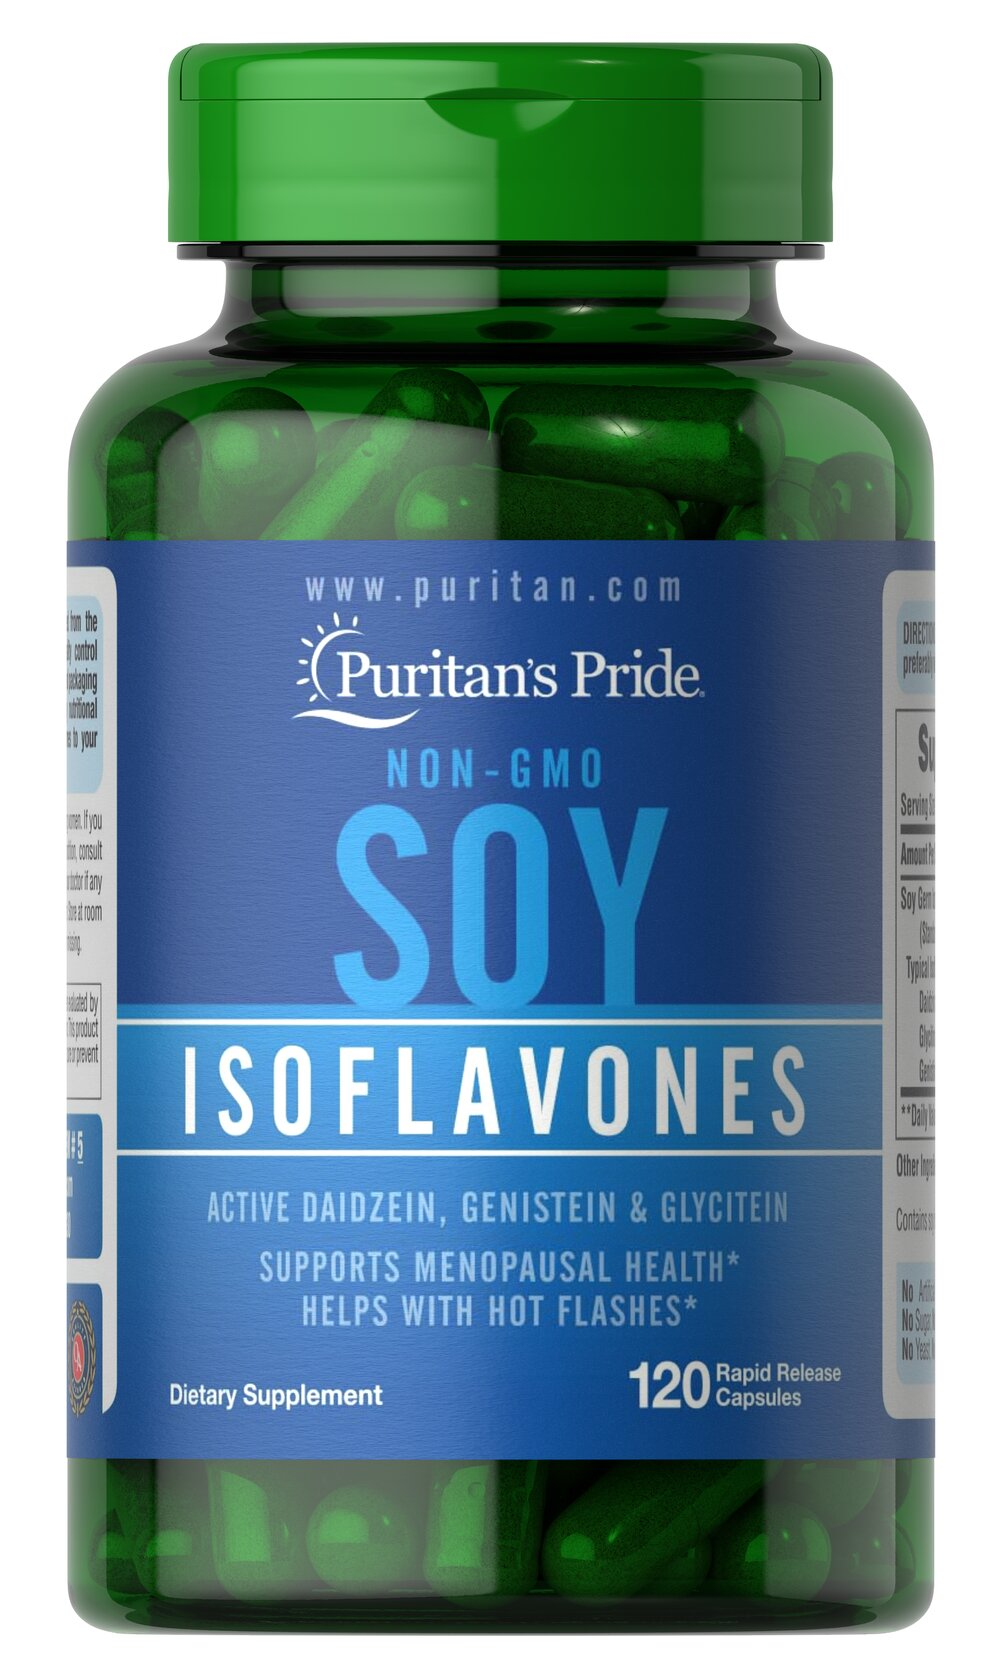 Non-GMO Soy Isoflavones 750 mg <p>Soy is a rich, plant-based source of phytoestrogens, which are naturally occurring compounds that help with hot flashes in menopausal women.**</p><p>Made from non-GMO certified soybeans, soy isoflavones provide holistic supplementation for a woman's midlife years. Our non-GMO soy isoflavones  include Daidzein, Genistein, and other soy isoflavones.</p> 120 Capsules 750 mg $19.59